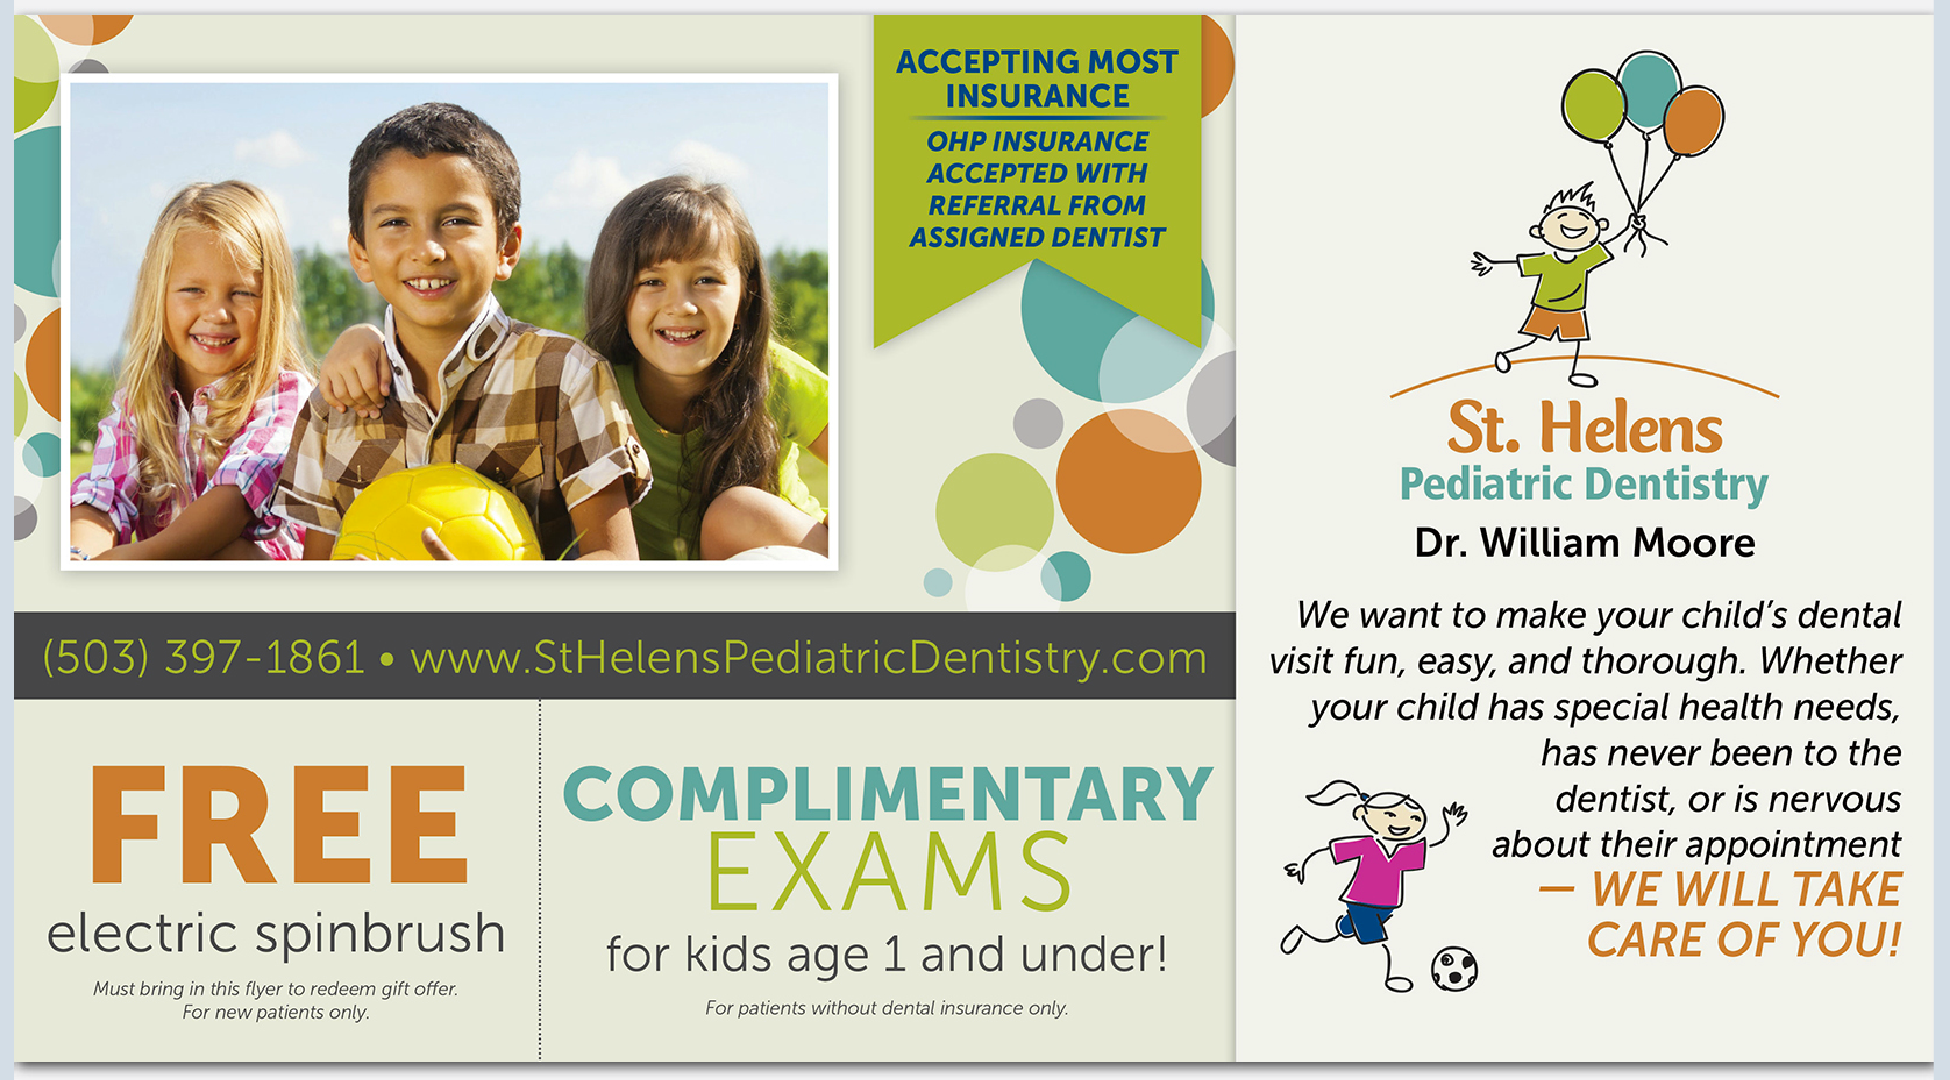 Welcome to St Helens Pediatric Dentistry - here are two amazing offers for you to use!